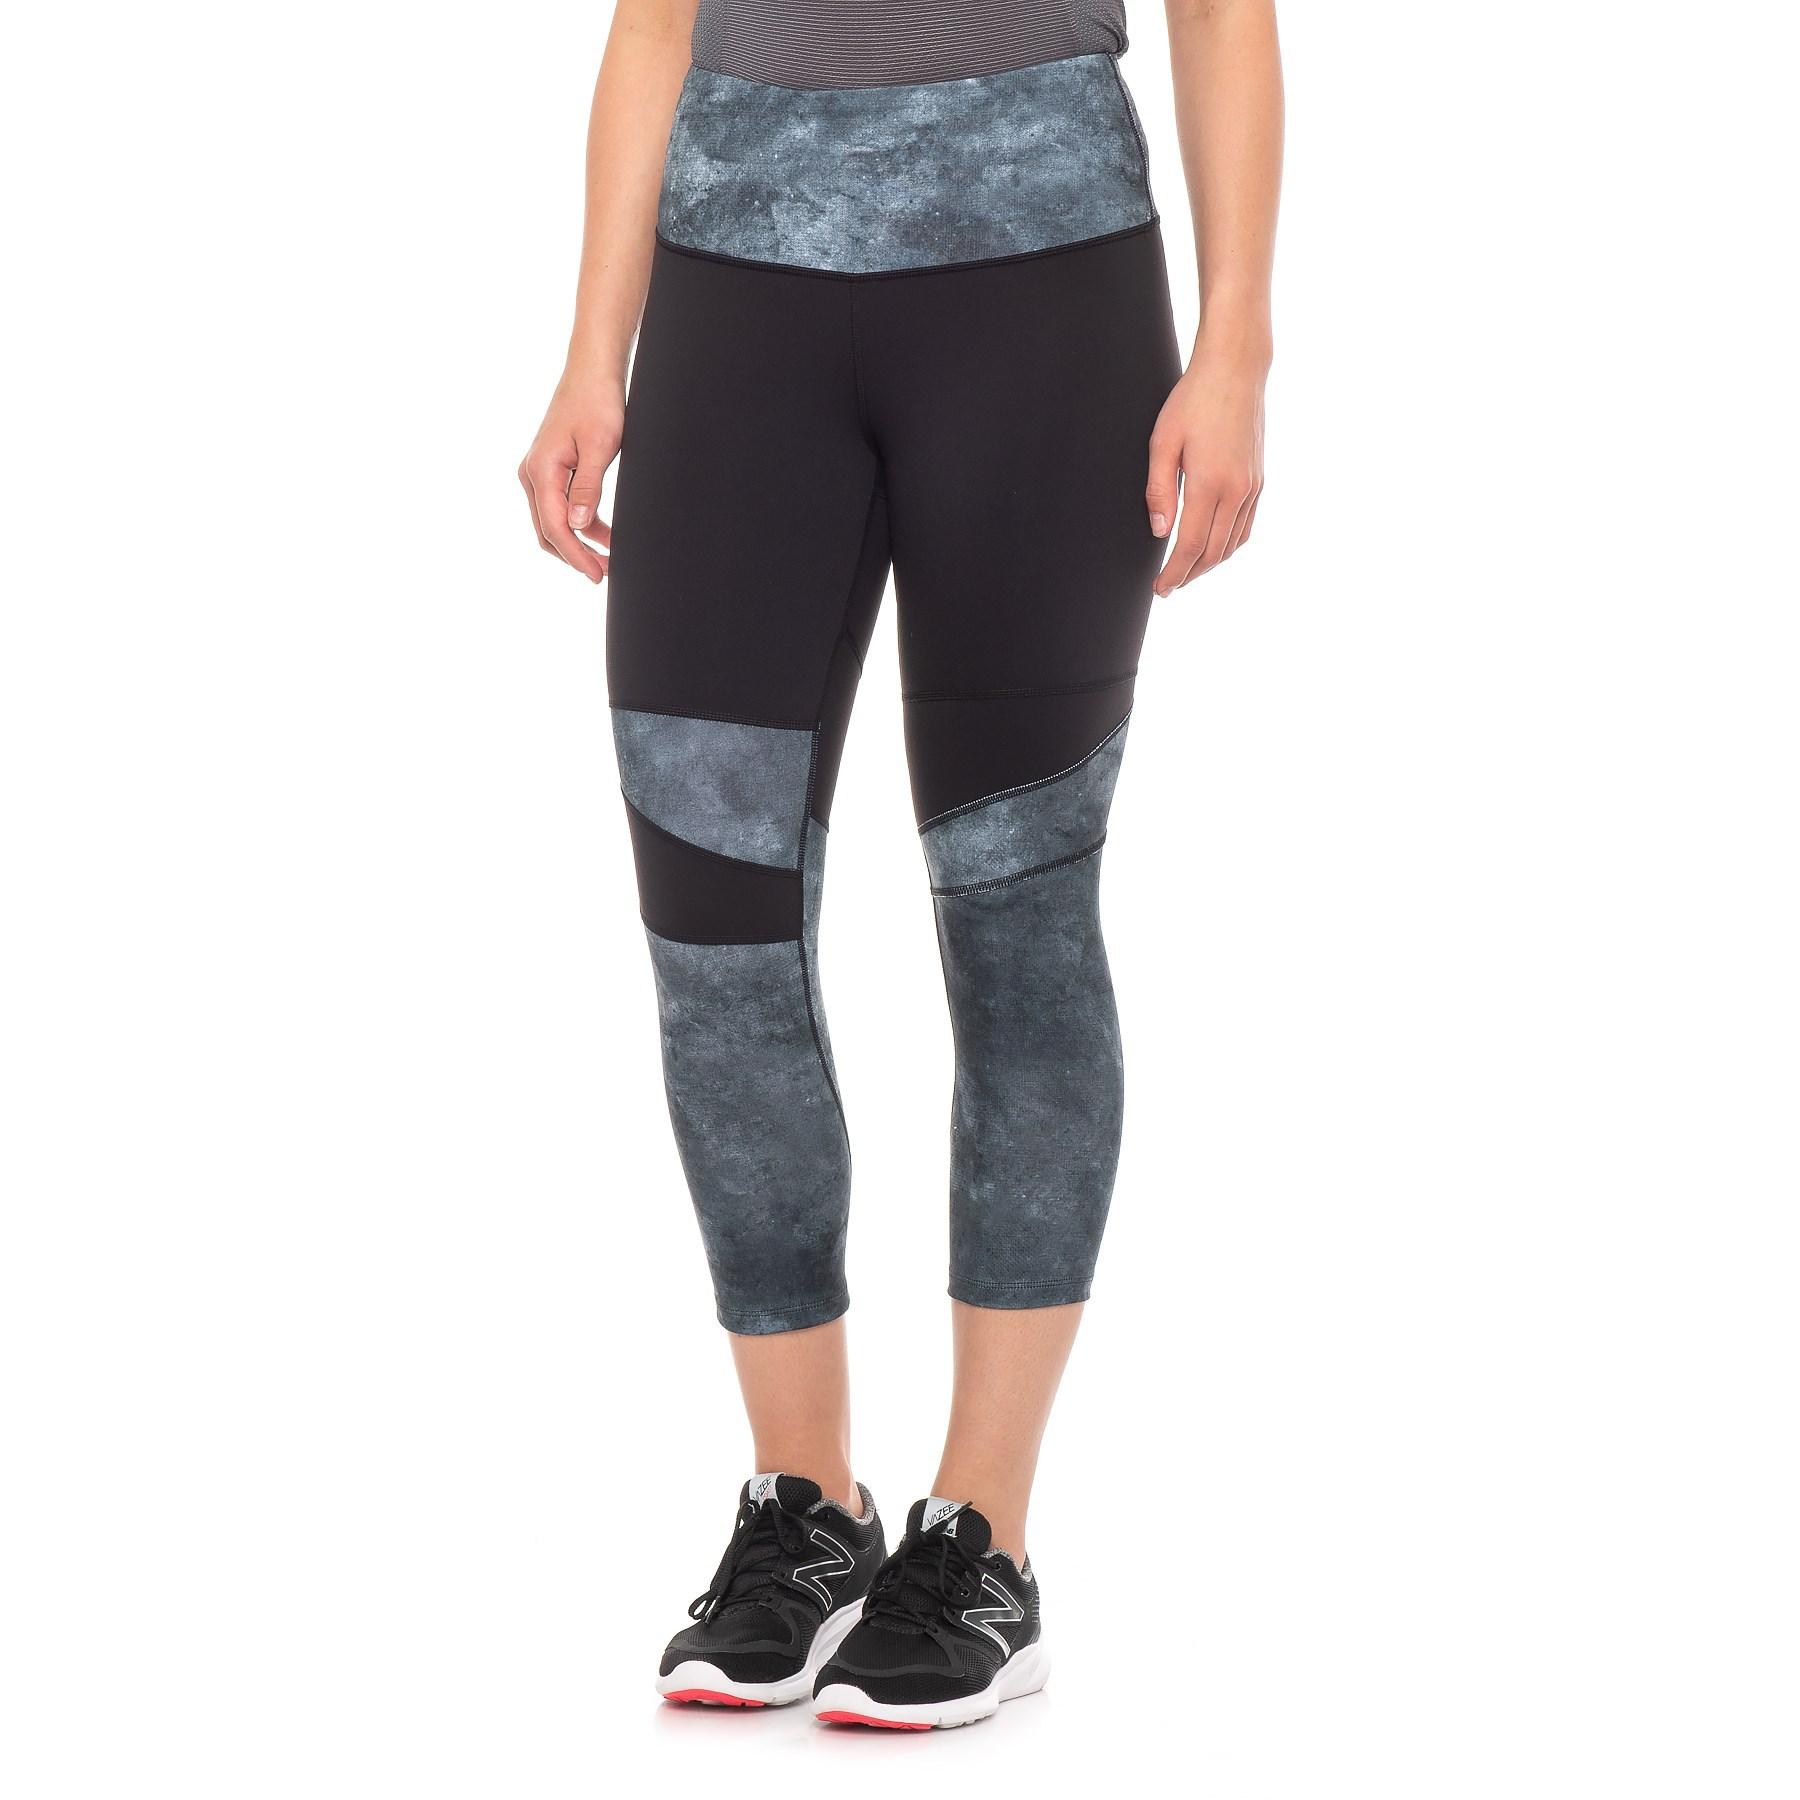 6420d93f5dcdb Lyst - The North Face Motivation High Rise Printed Crop Leggings ...